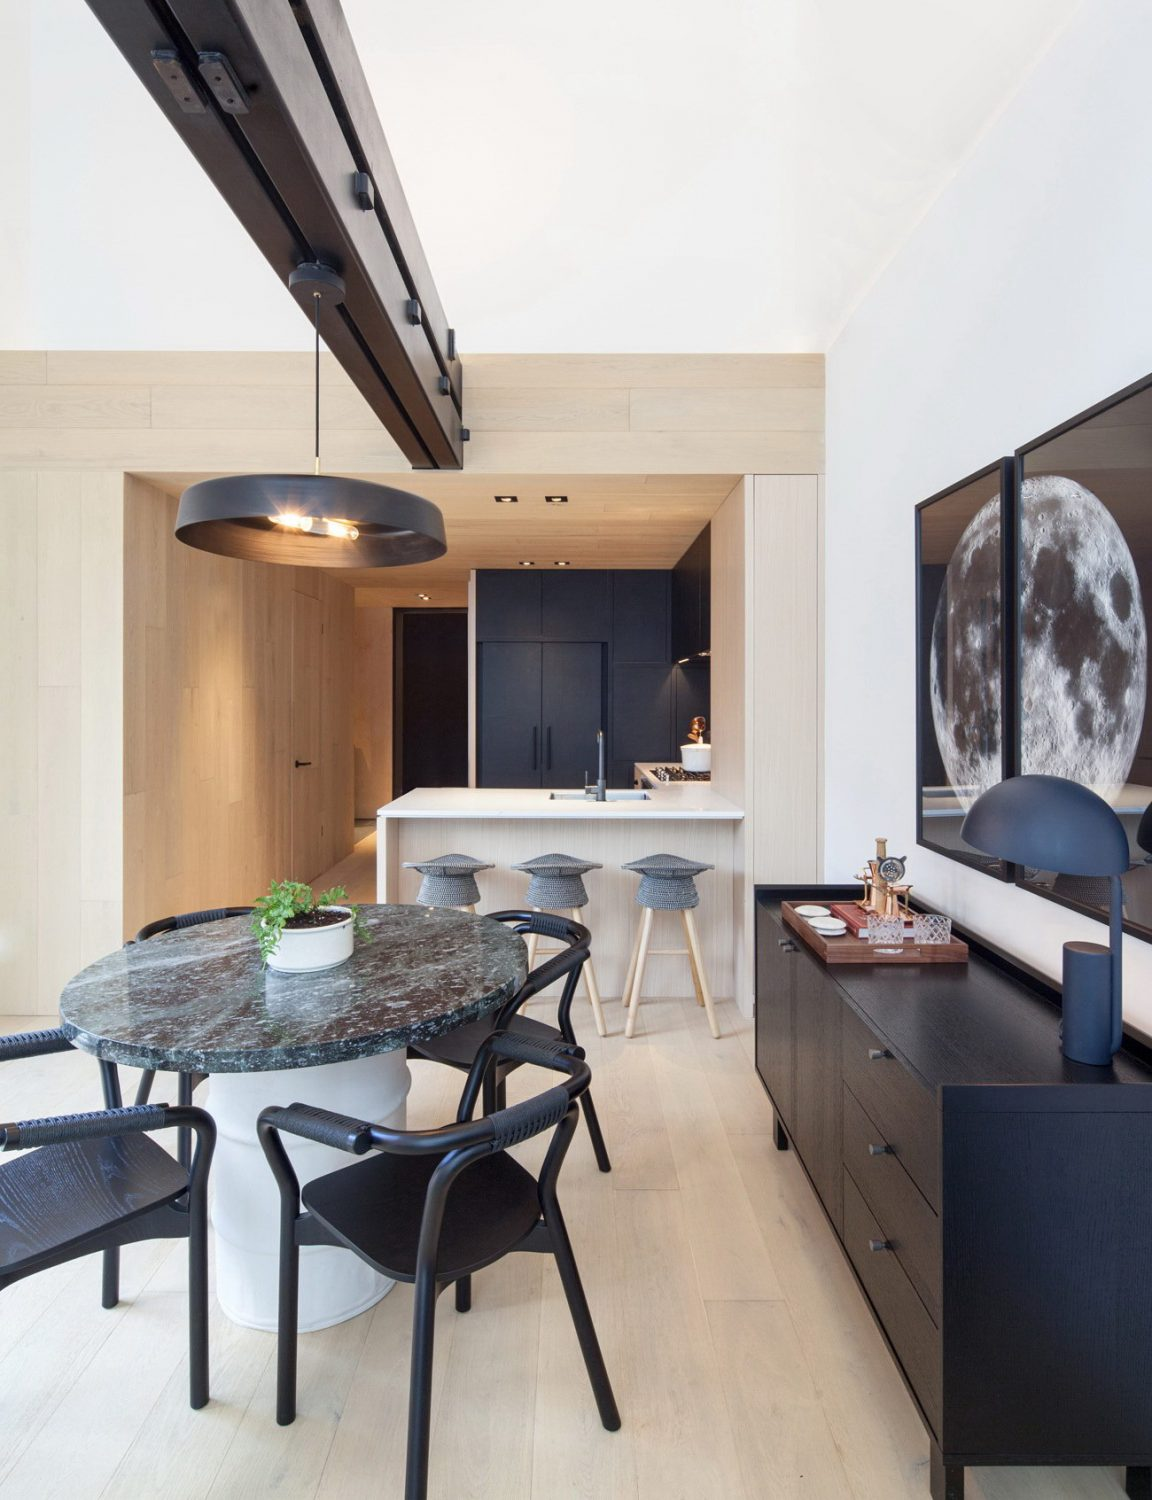 Cabin Residences – A Cabin-Style Condo Model Suite by Mason Studio